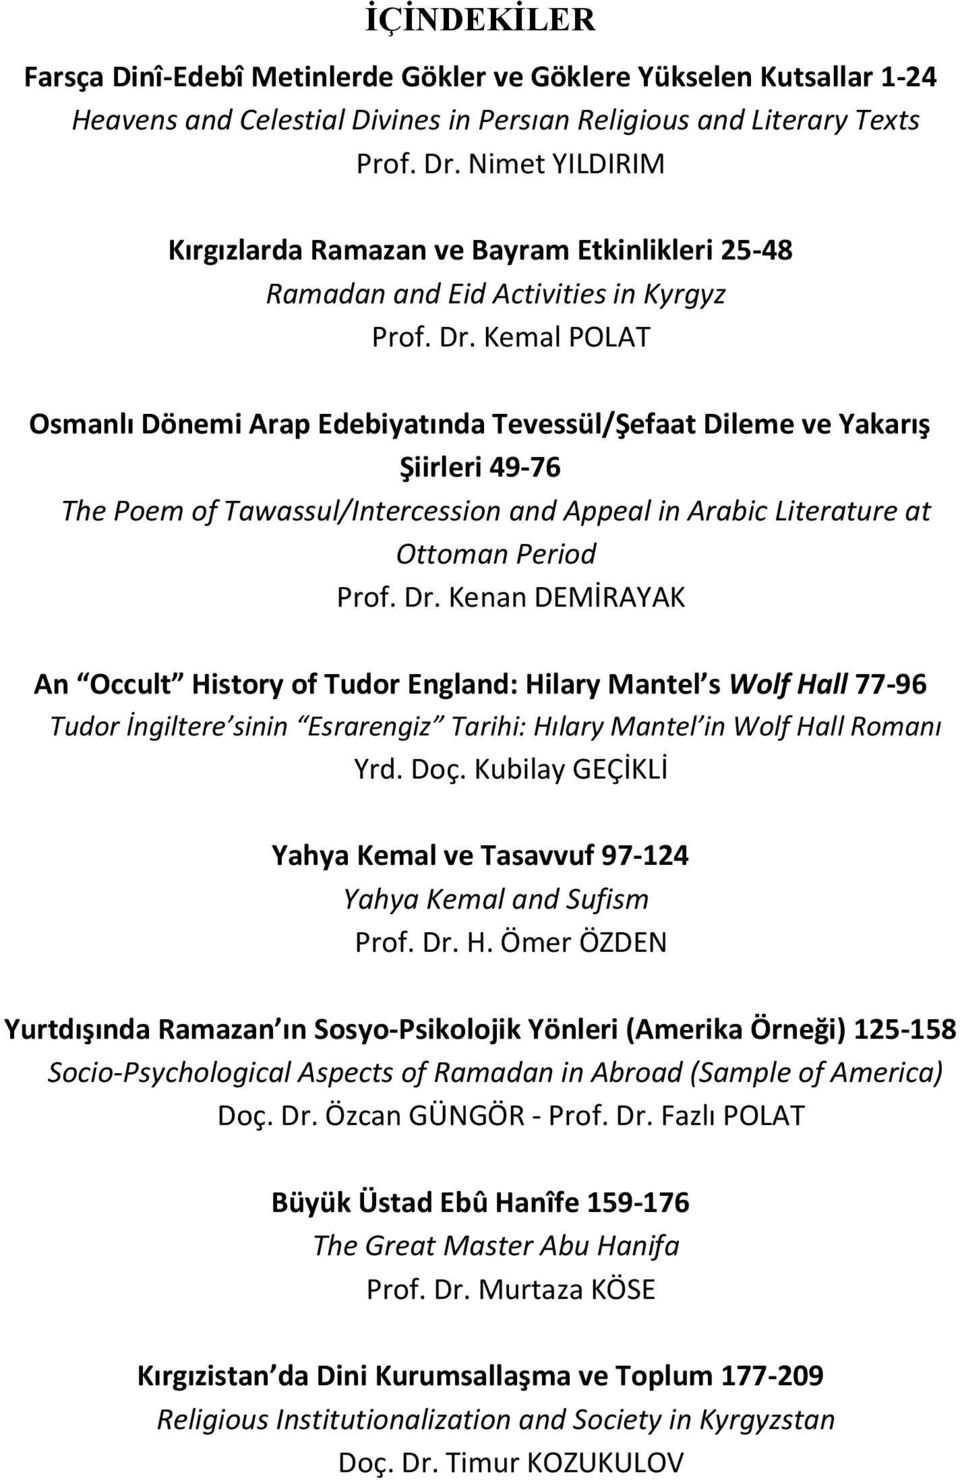 Kemal POLAT Osmanlı Dönemi Arap Edebiyatında Tevessül/Şefaat Dileme ve Yakarış Şiirleri 49-76 The Poem of Tawassul/Intercession and Appeal in Arabic Literature at Ottoman Period Prof. Dr.